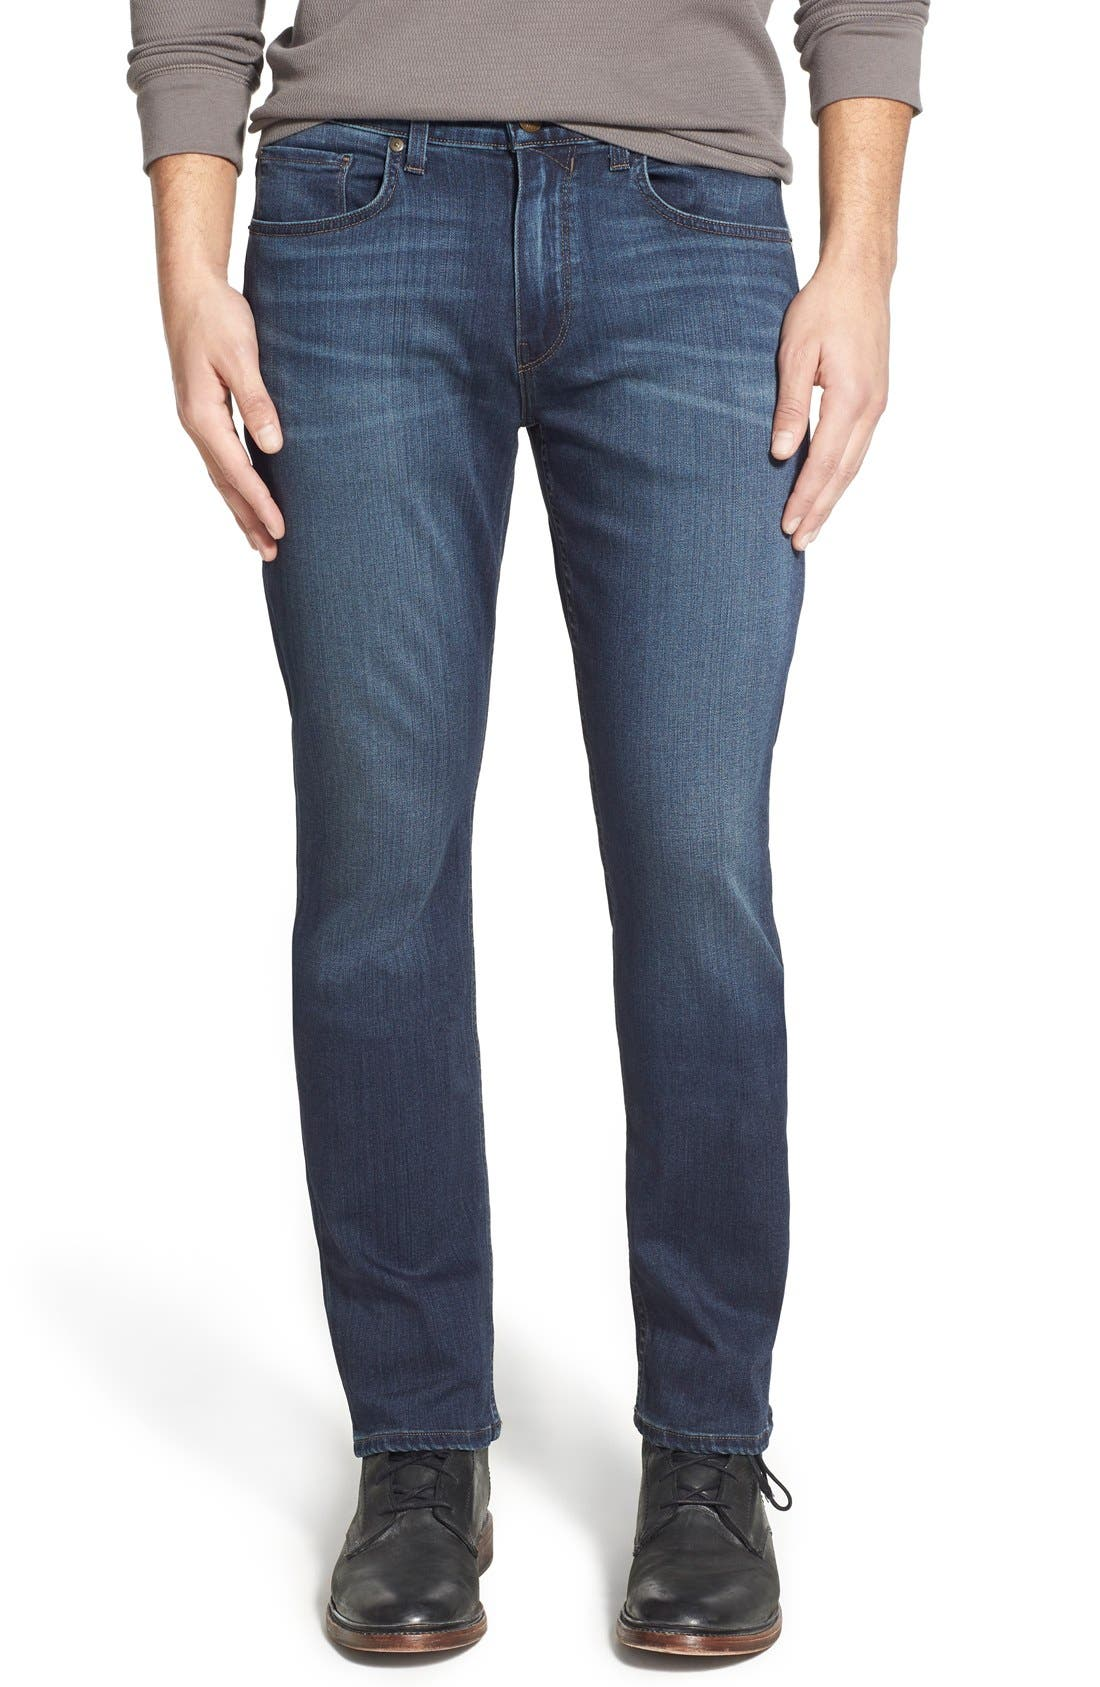 PAIGE 'Federal' Slim Straight Leg Jeans, Main, color, BLAKELY